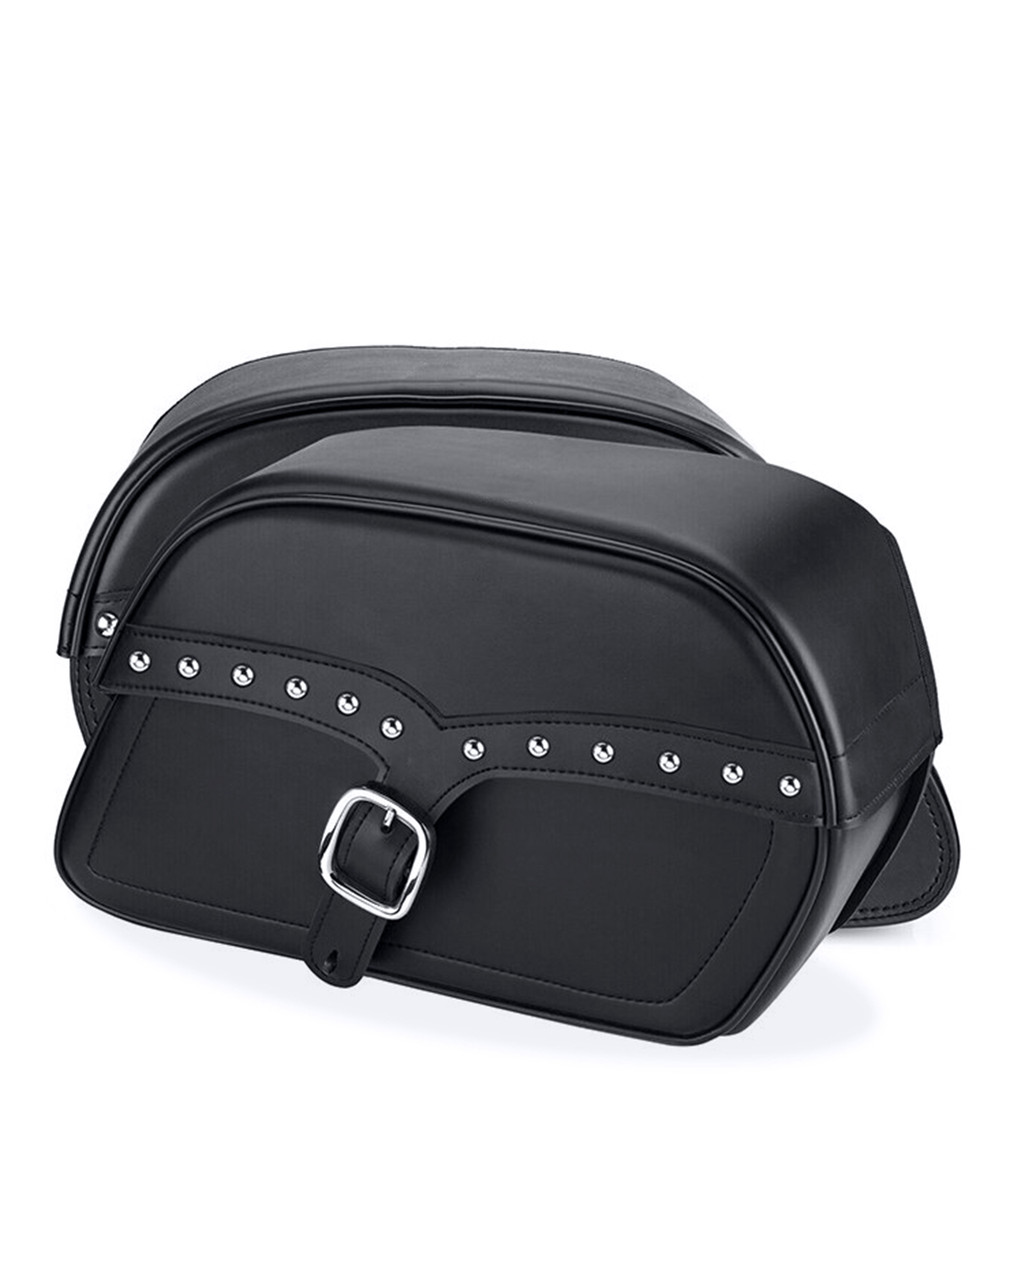 Honda 1500 Valkyrie Standard Uni SS Slanted Studded L Motorcycle saddlebags Both Bags View